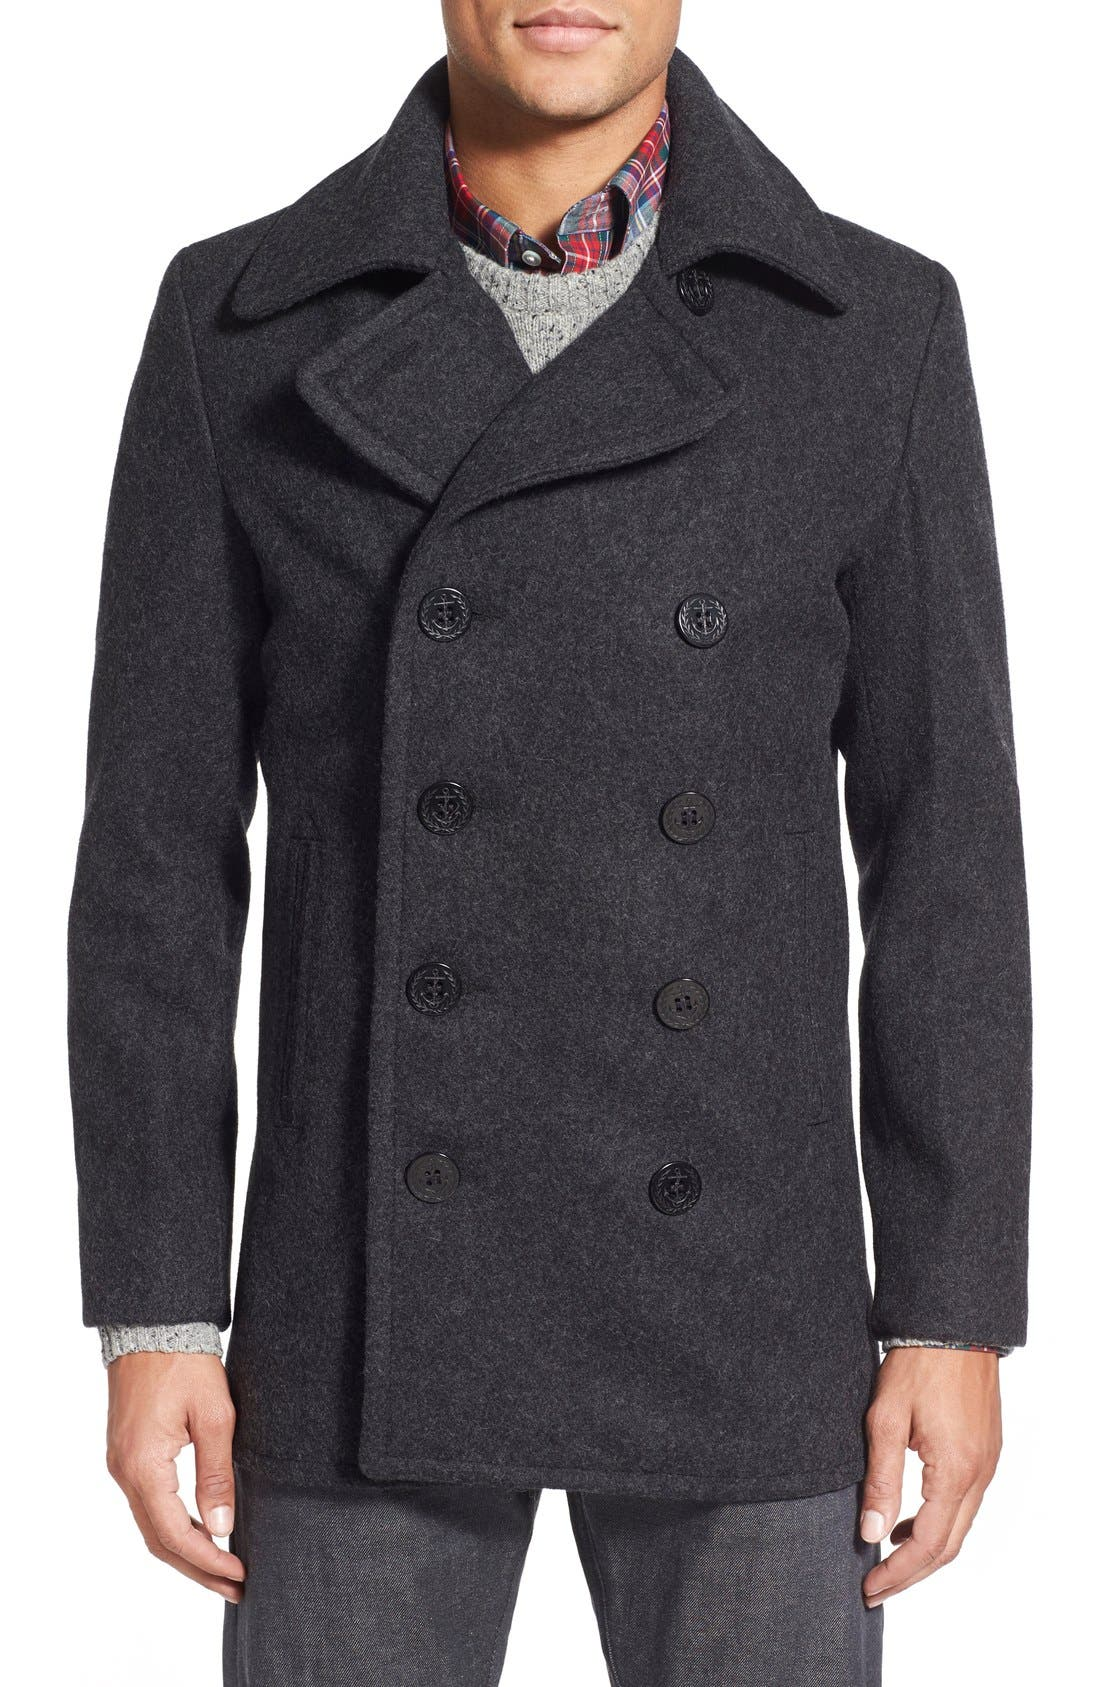 Pendleton men's wool coats & jackets are carefully crafted for warmth and durability. Shop men's jackets & coats now.